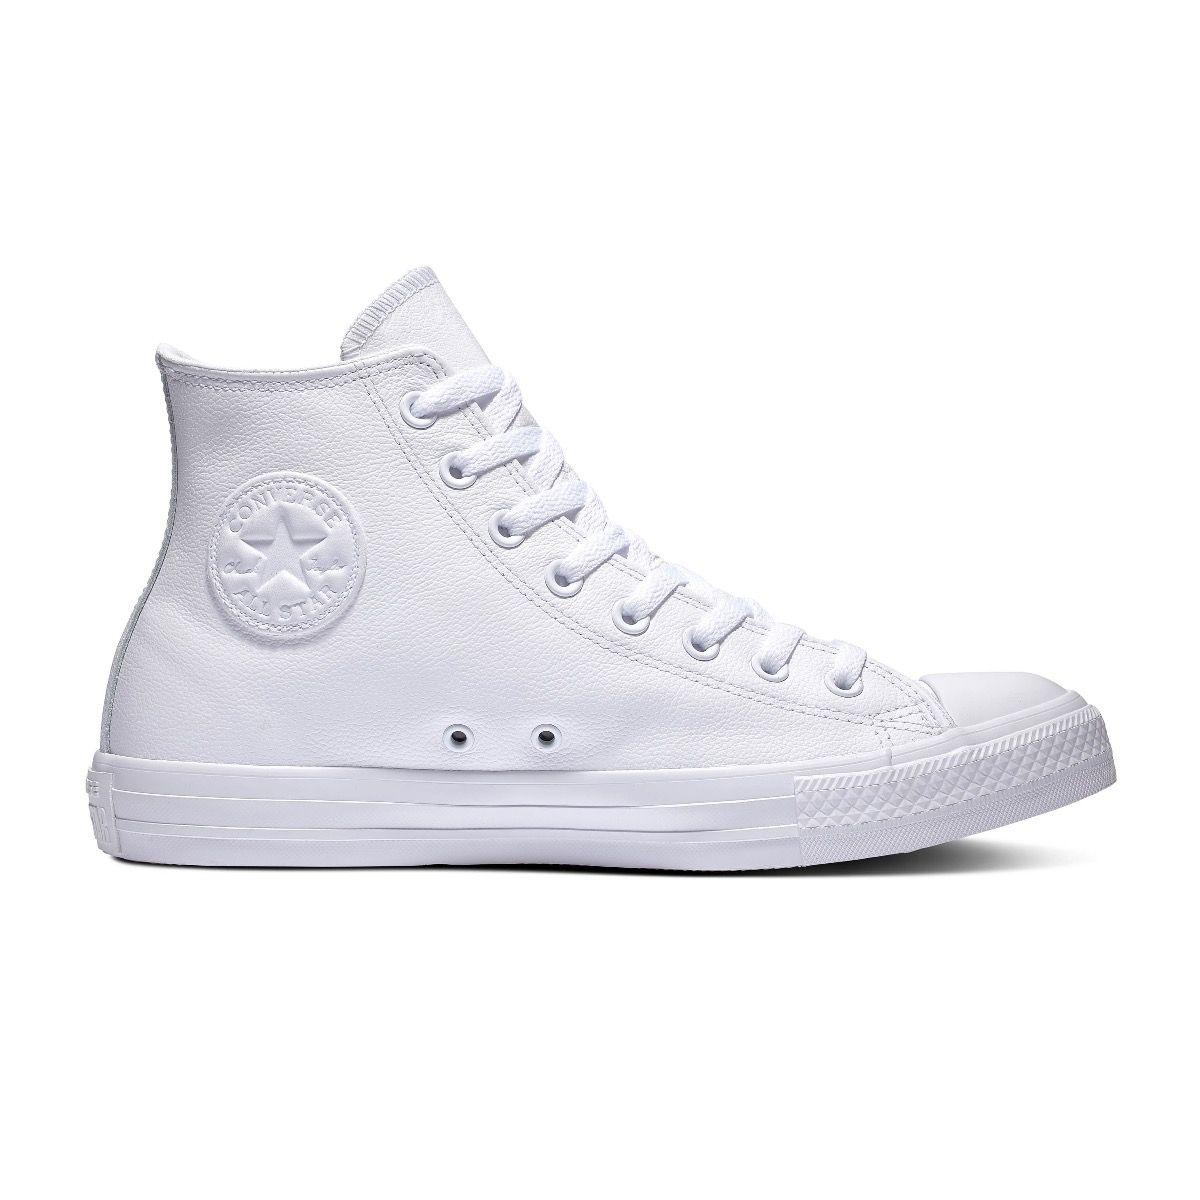 Converse All Stars Leather Hoog 1T406 Wit-35 maat 35